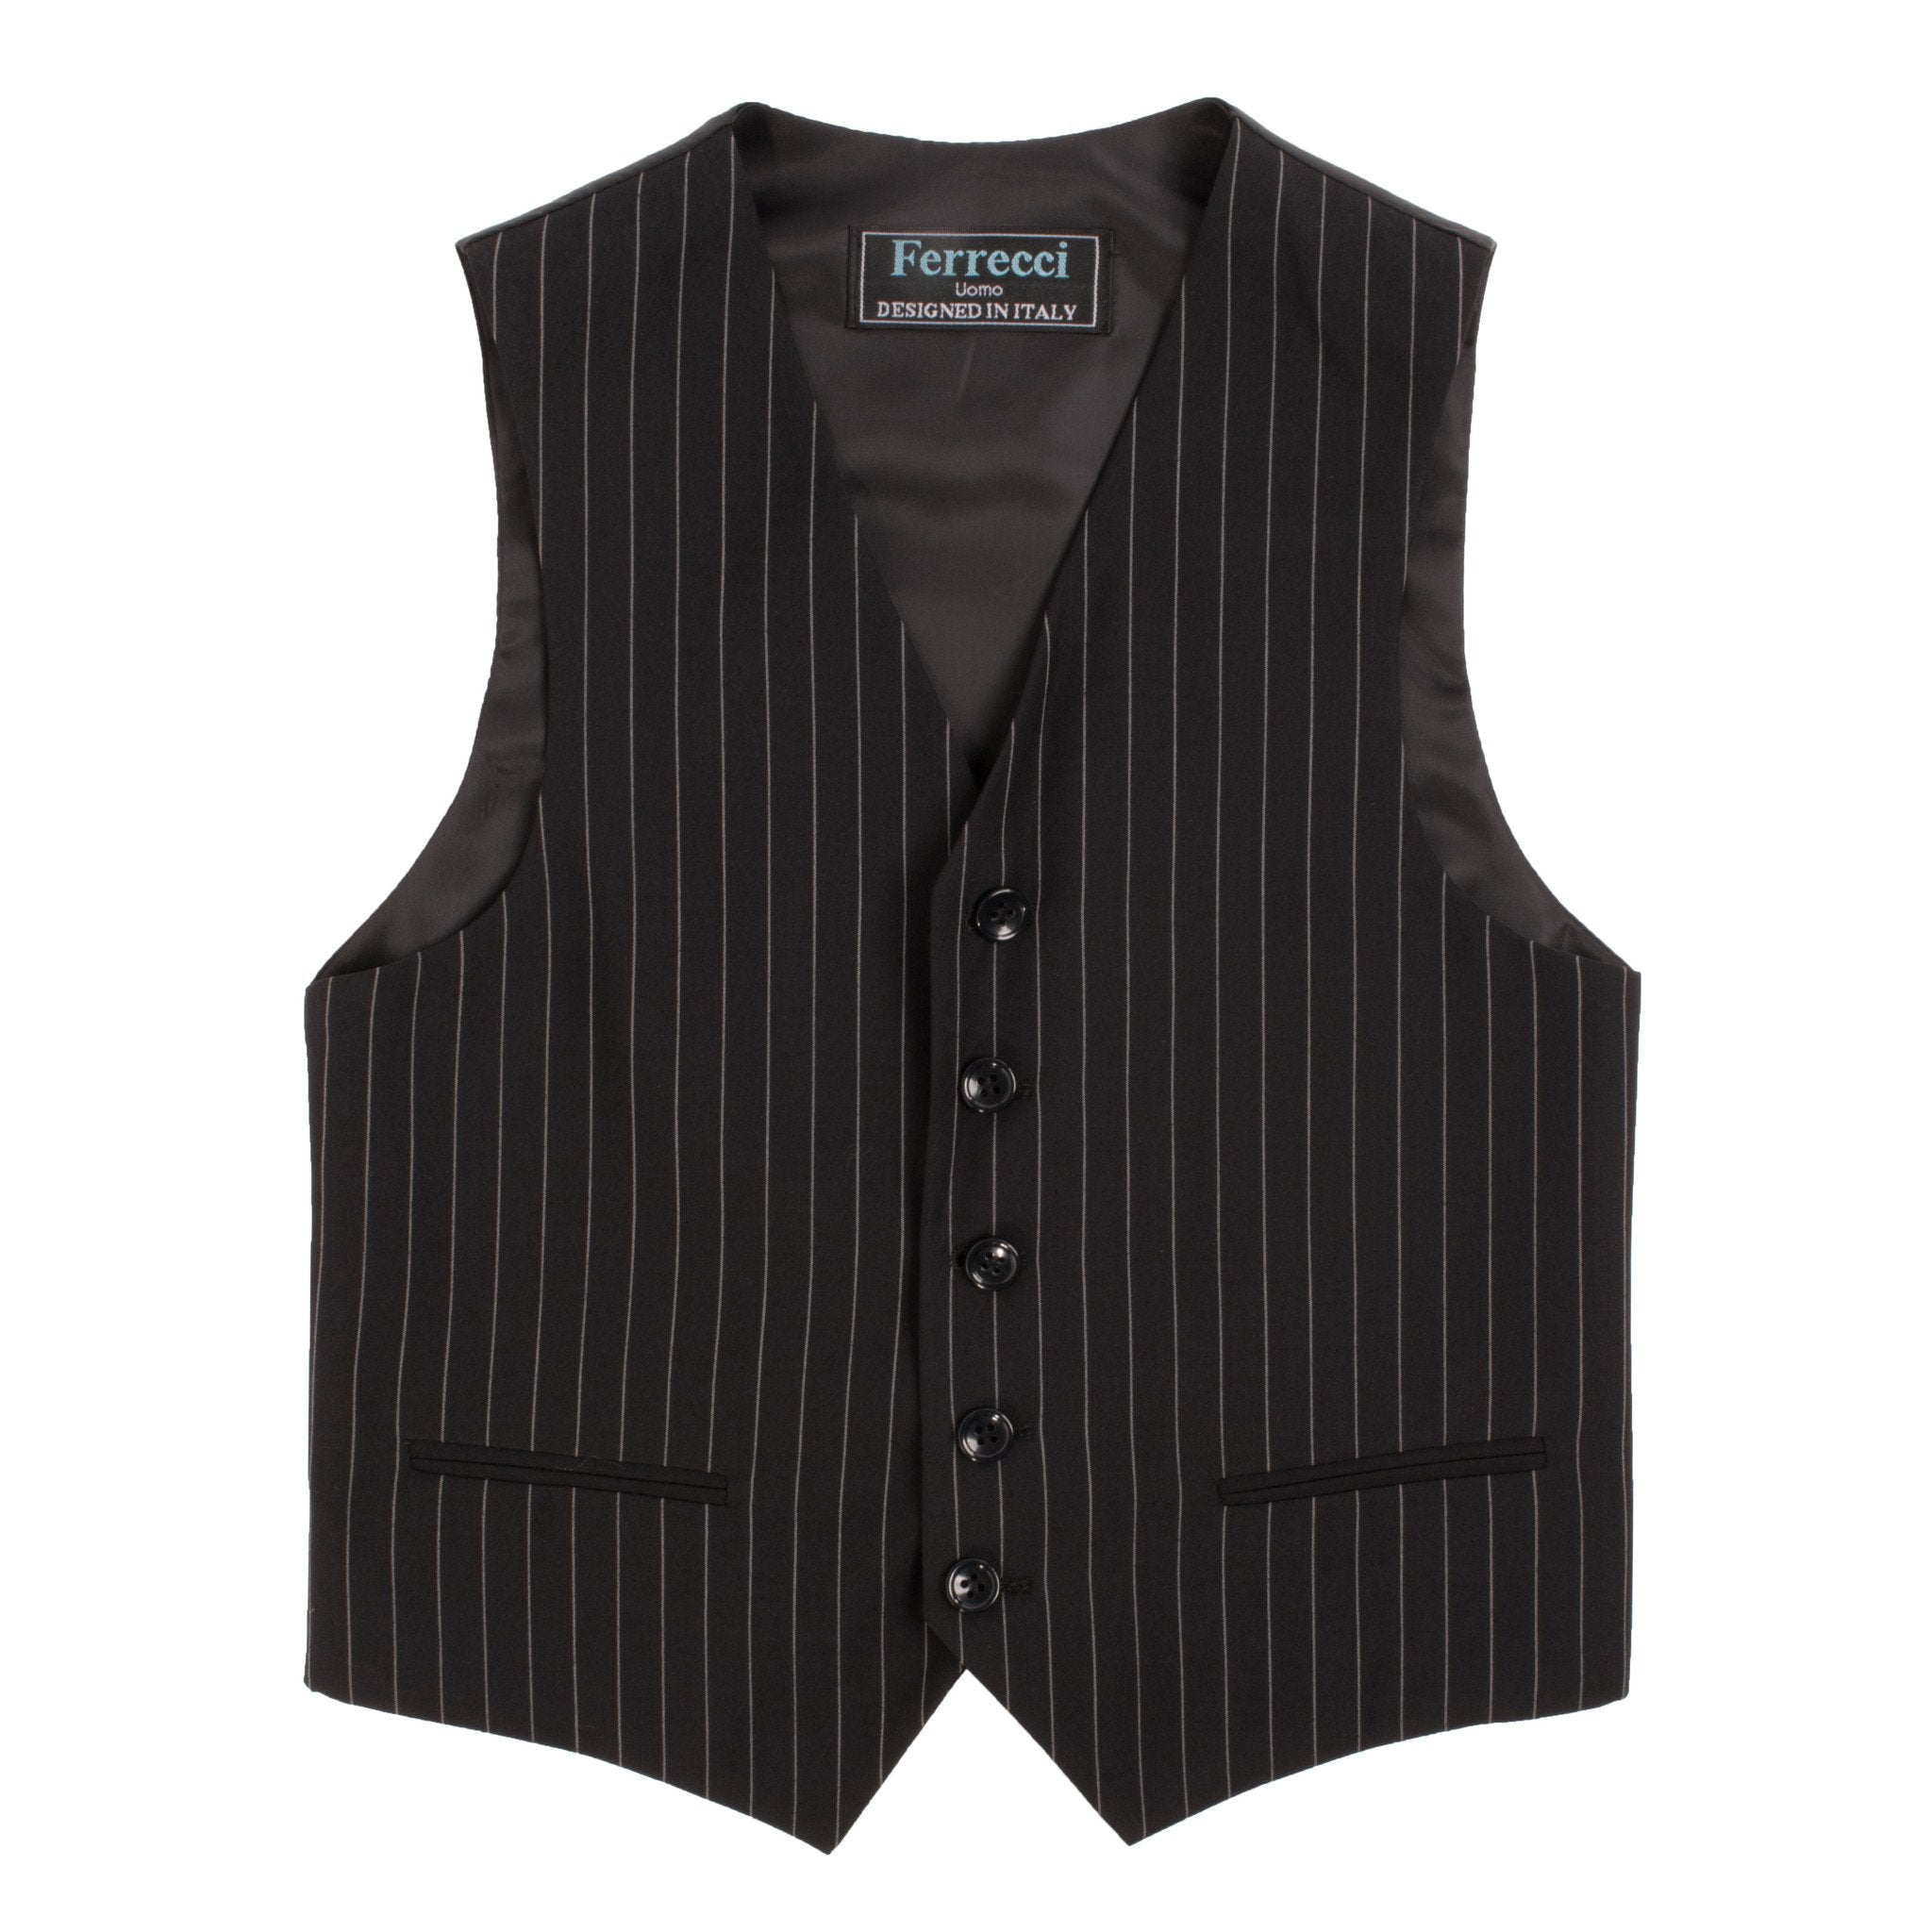 Boys Premium Black Pinstripe 3pc Vested Suit - Giorgio's Menswear